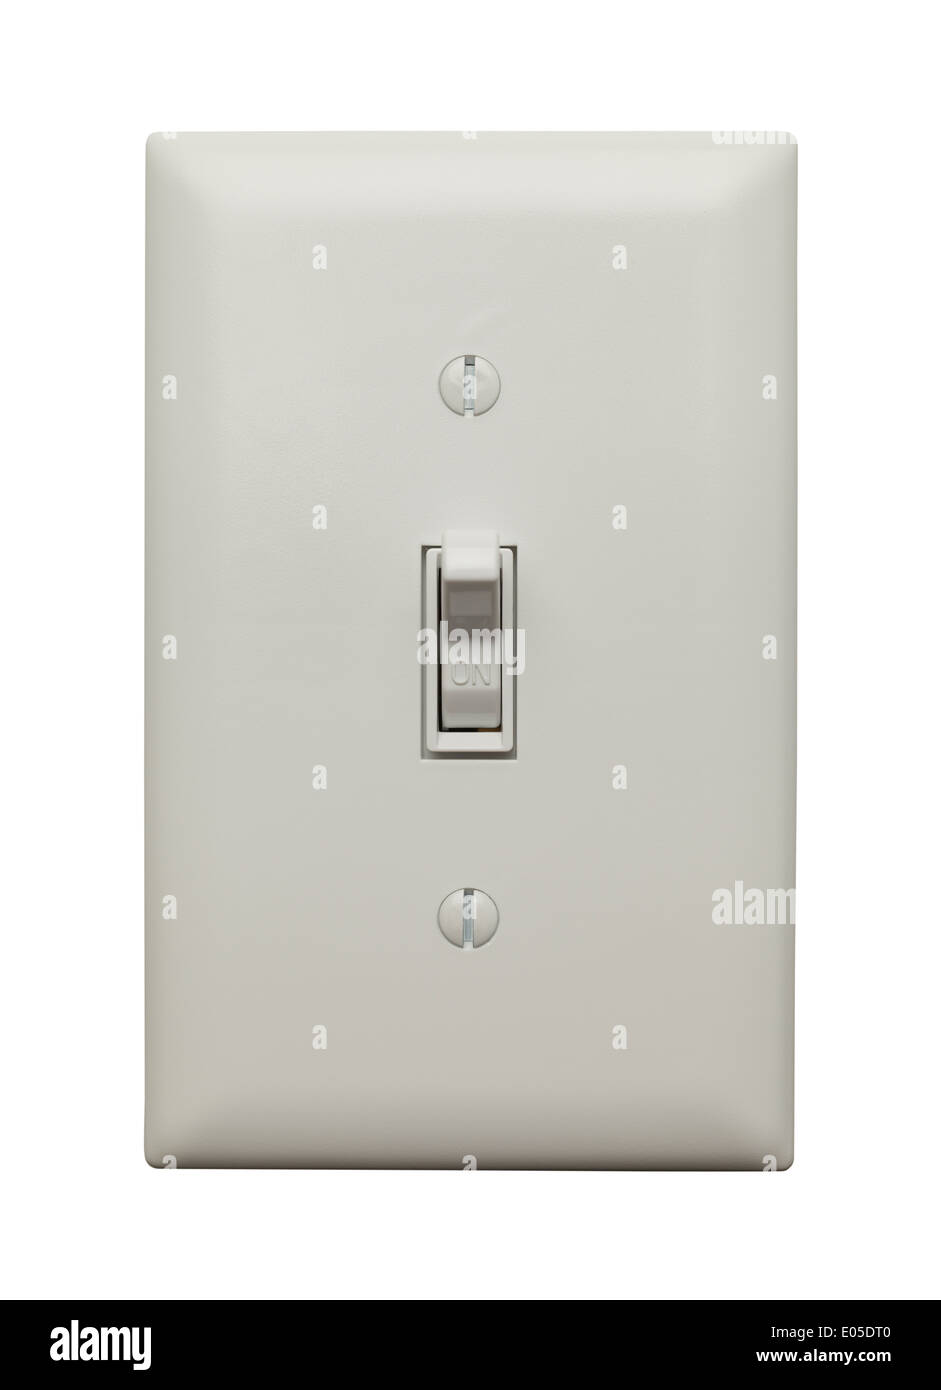 Light Switch in the On Postion Isoleted on White Background. - Stock Image